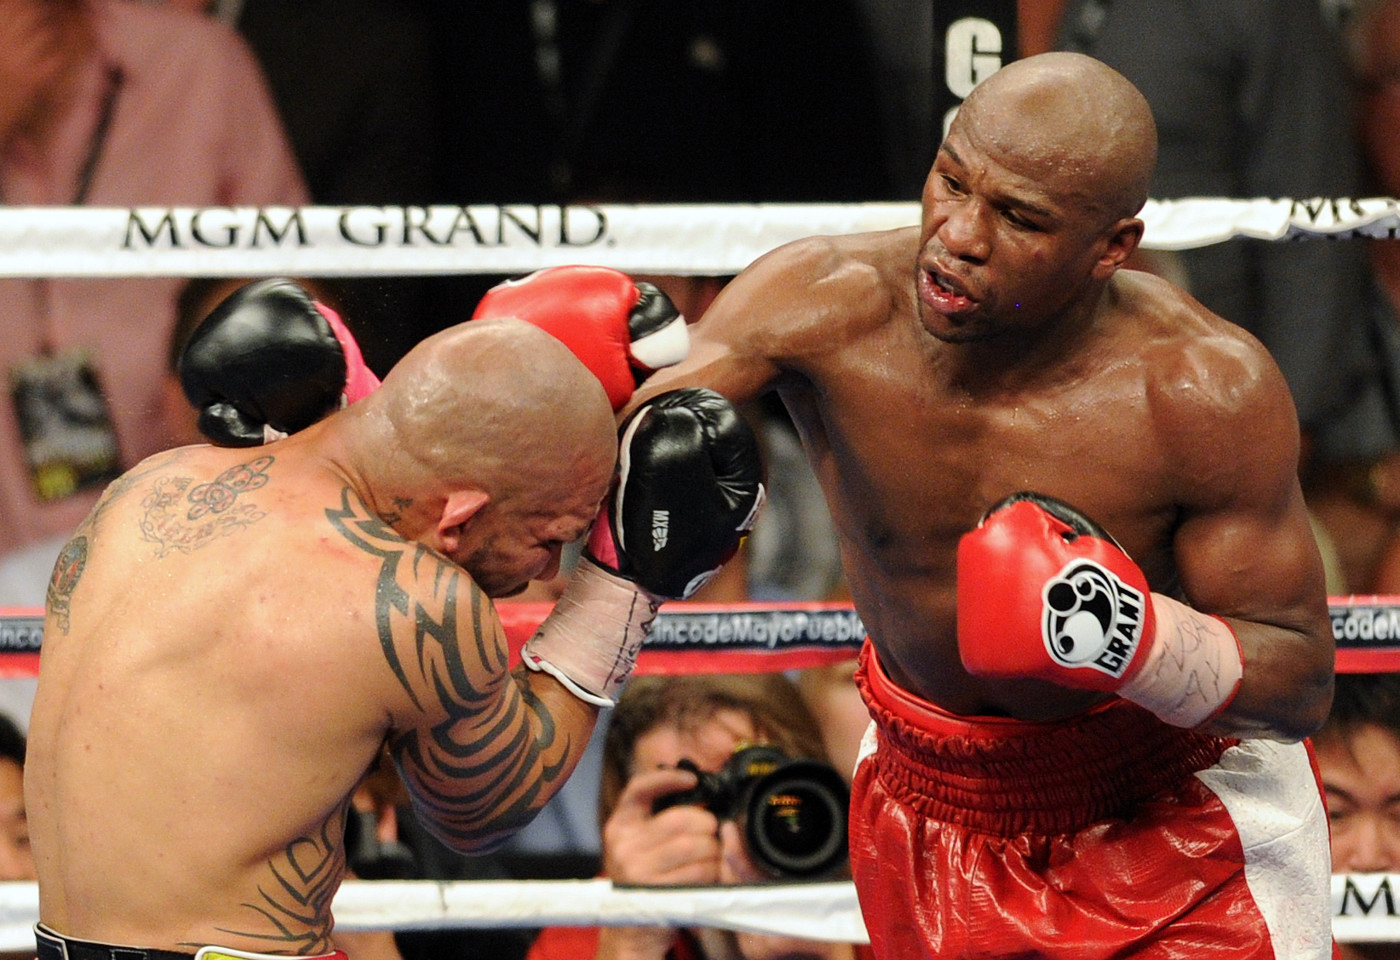 file_173113_2_cotto_vs_mayweather_5_20120506_1385882792